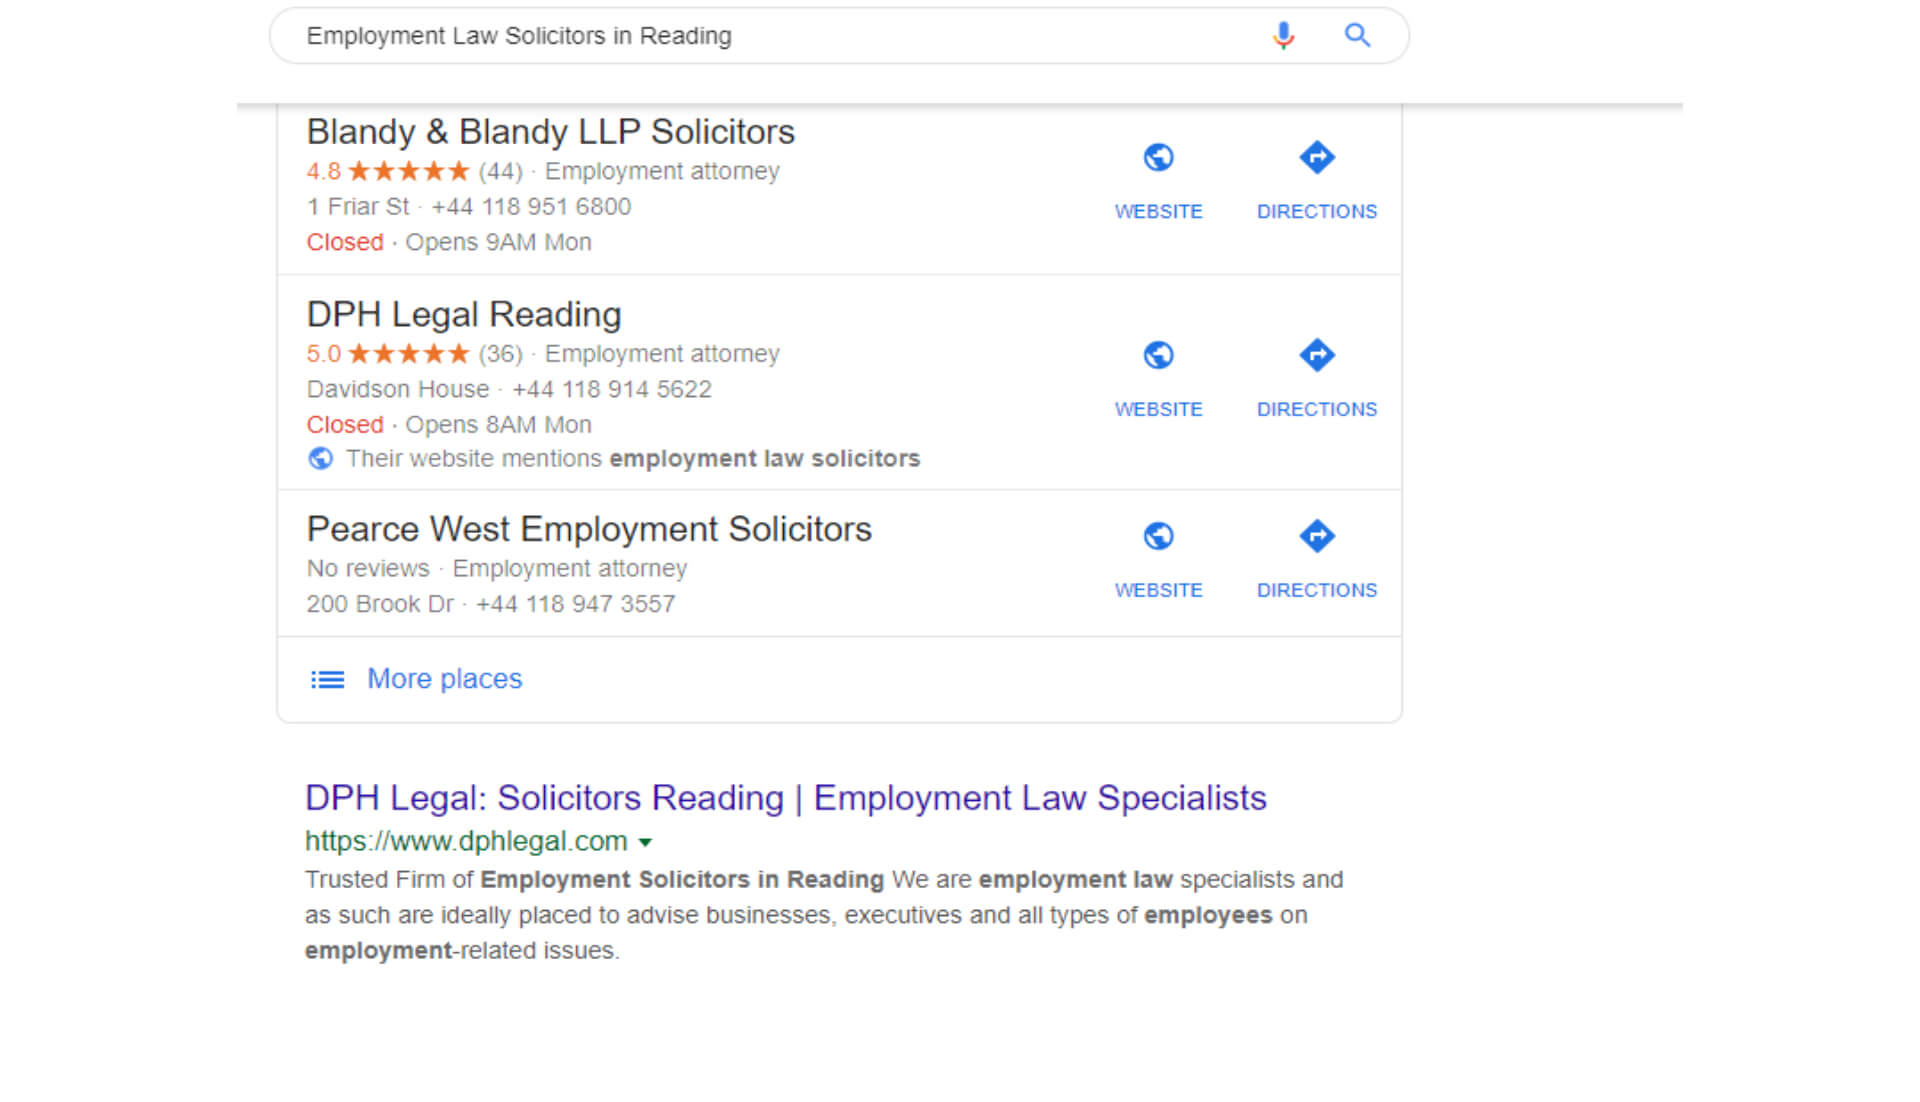 Employment Law Solicitors in Reading